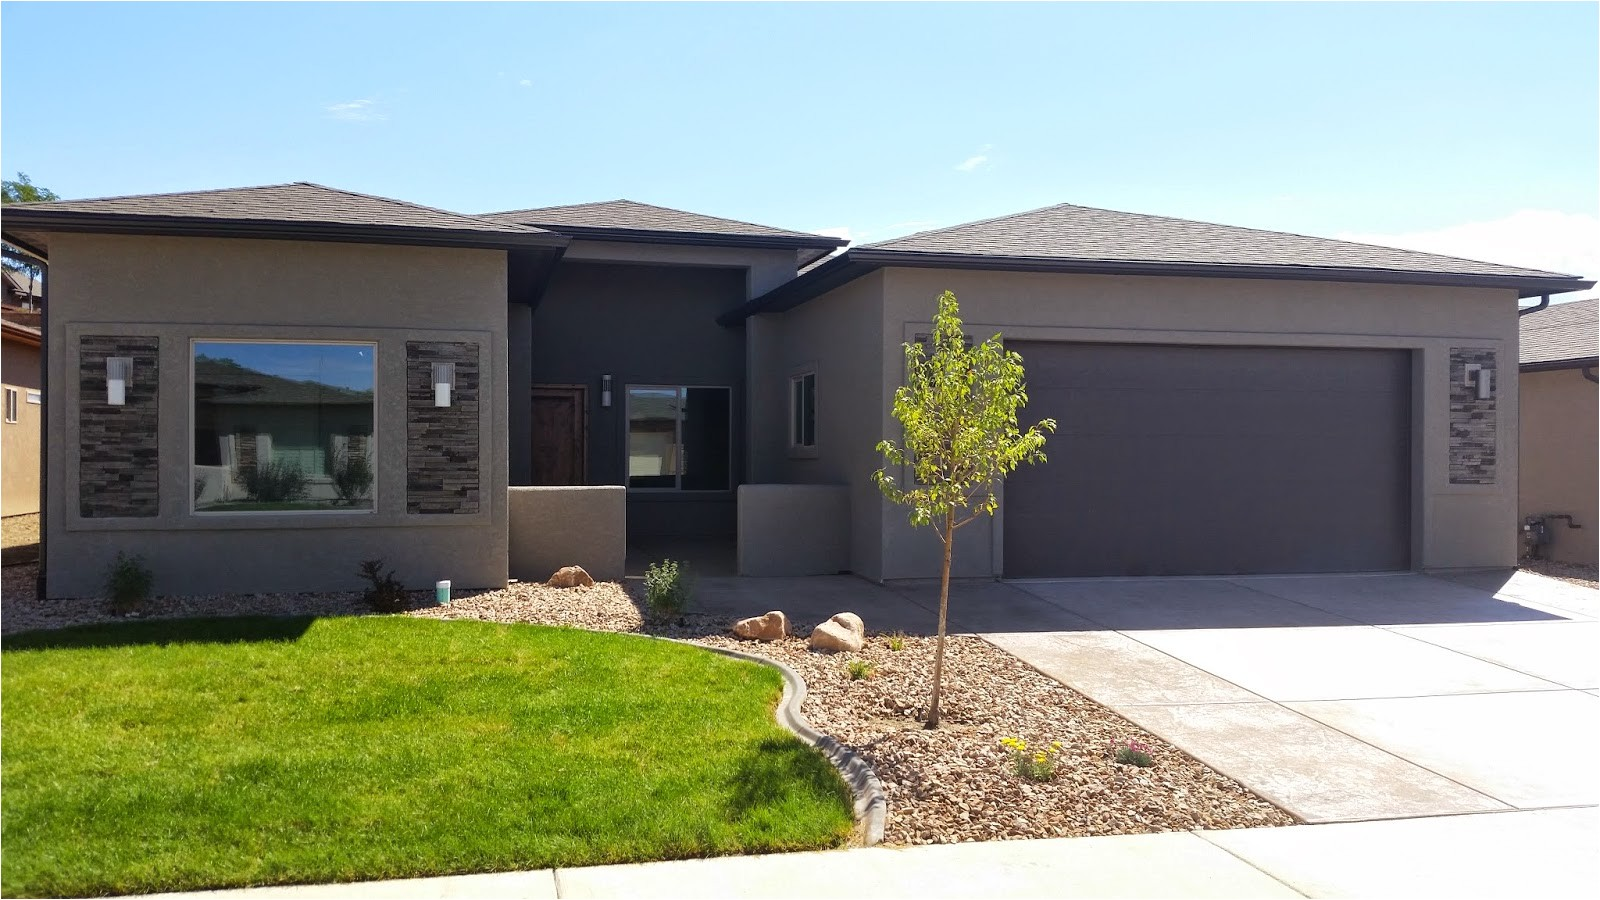 Parade Of Homes Grand Junction Grand Junction Real Estate Market Parade Of Homes